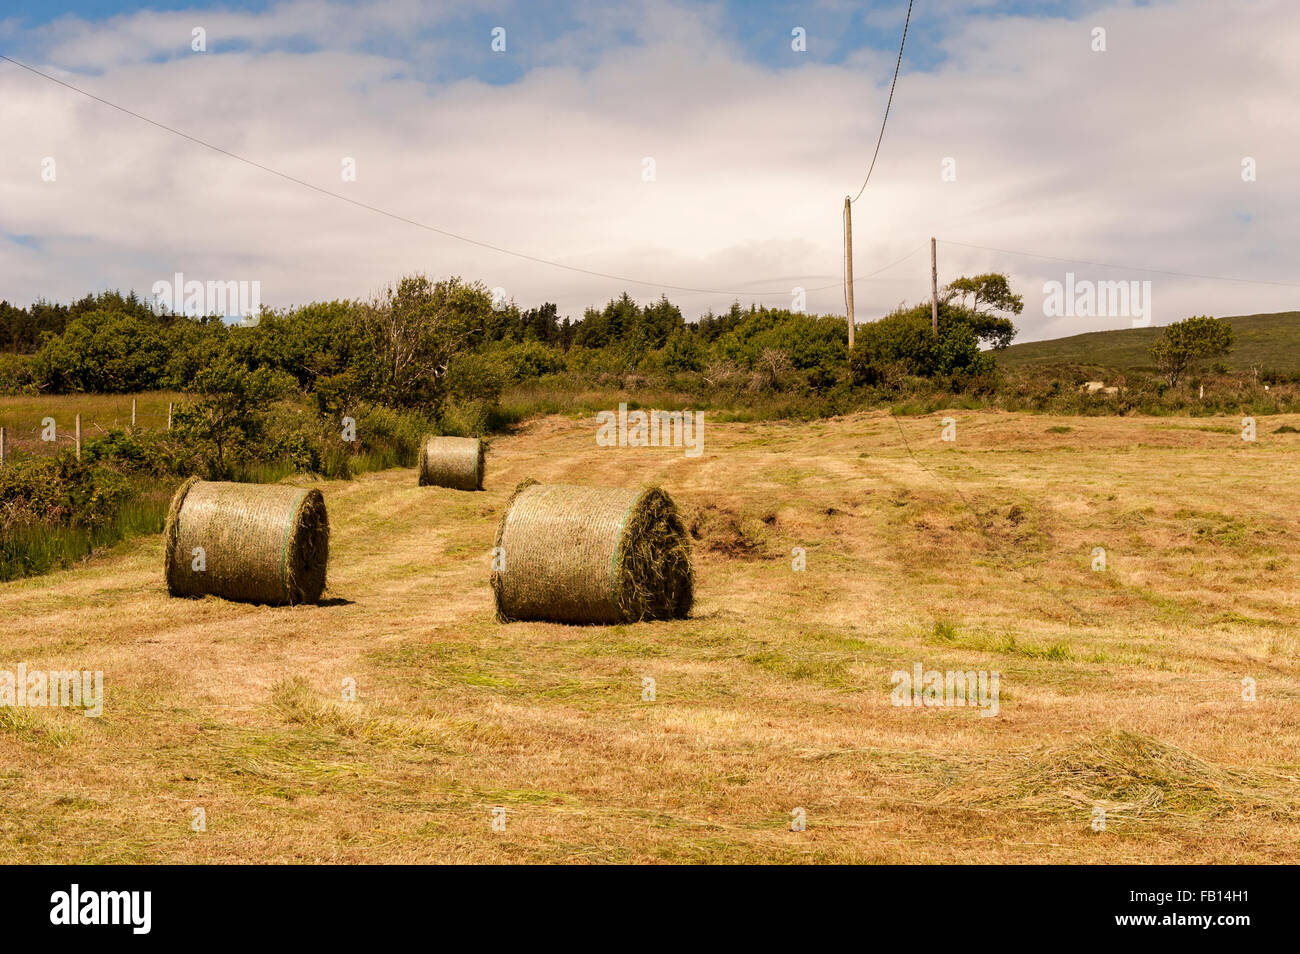 Bales of silage waiting to be wrapped in Ballydehob, West Cork, Ireland with blue sky and copy space. - Stock Image